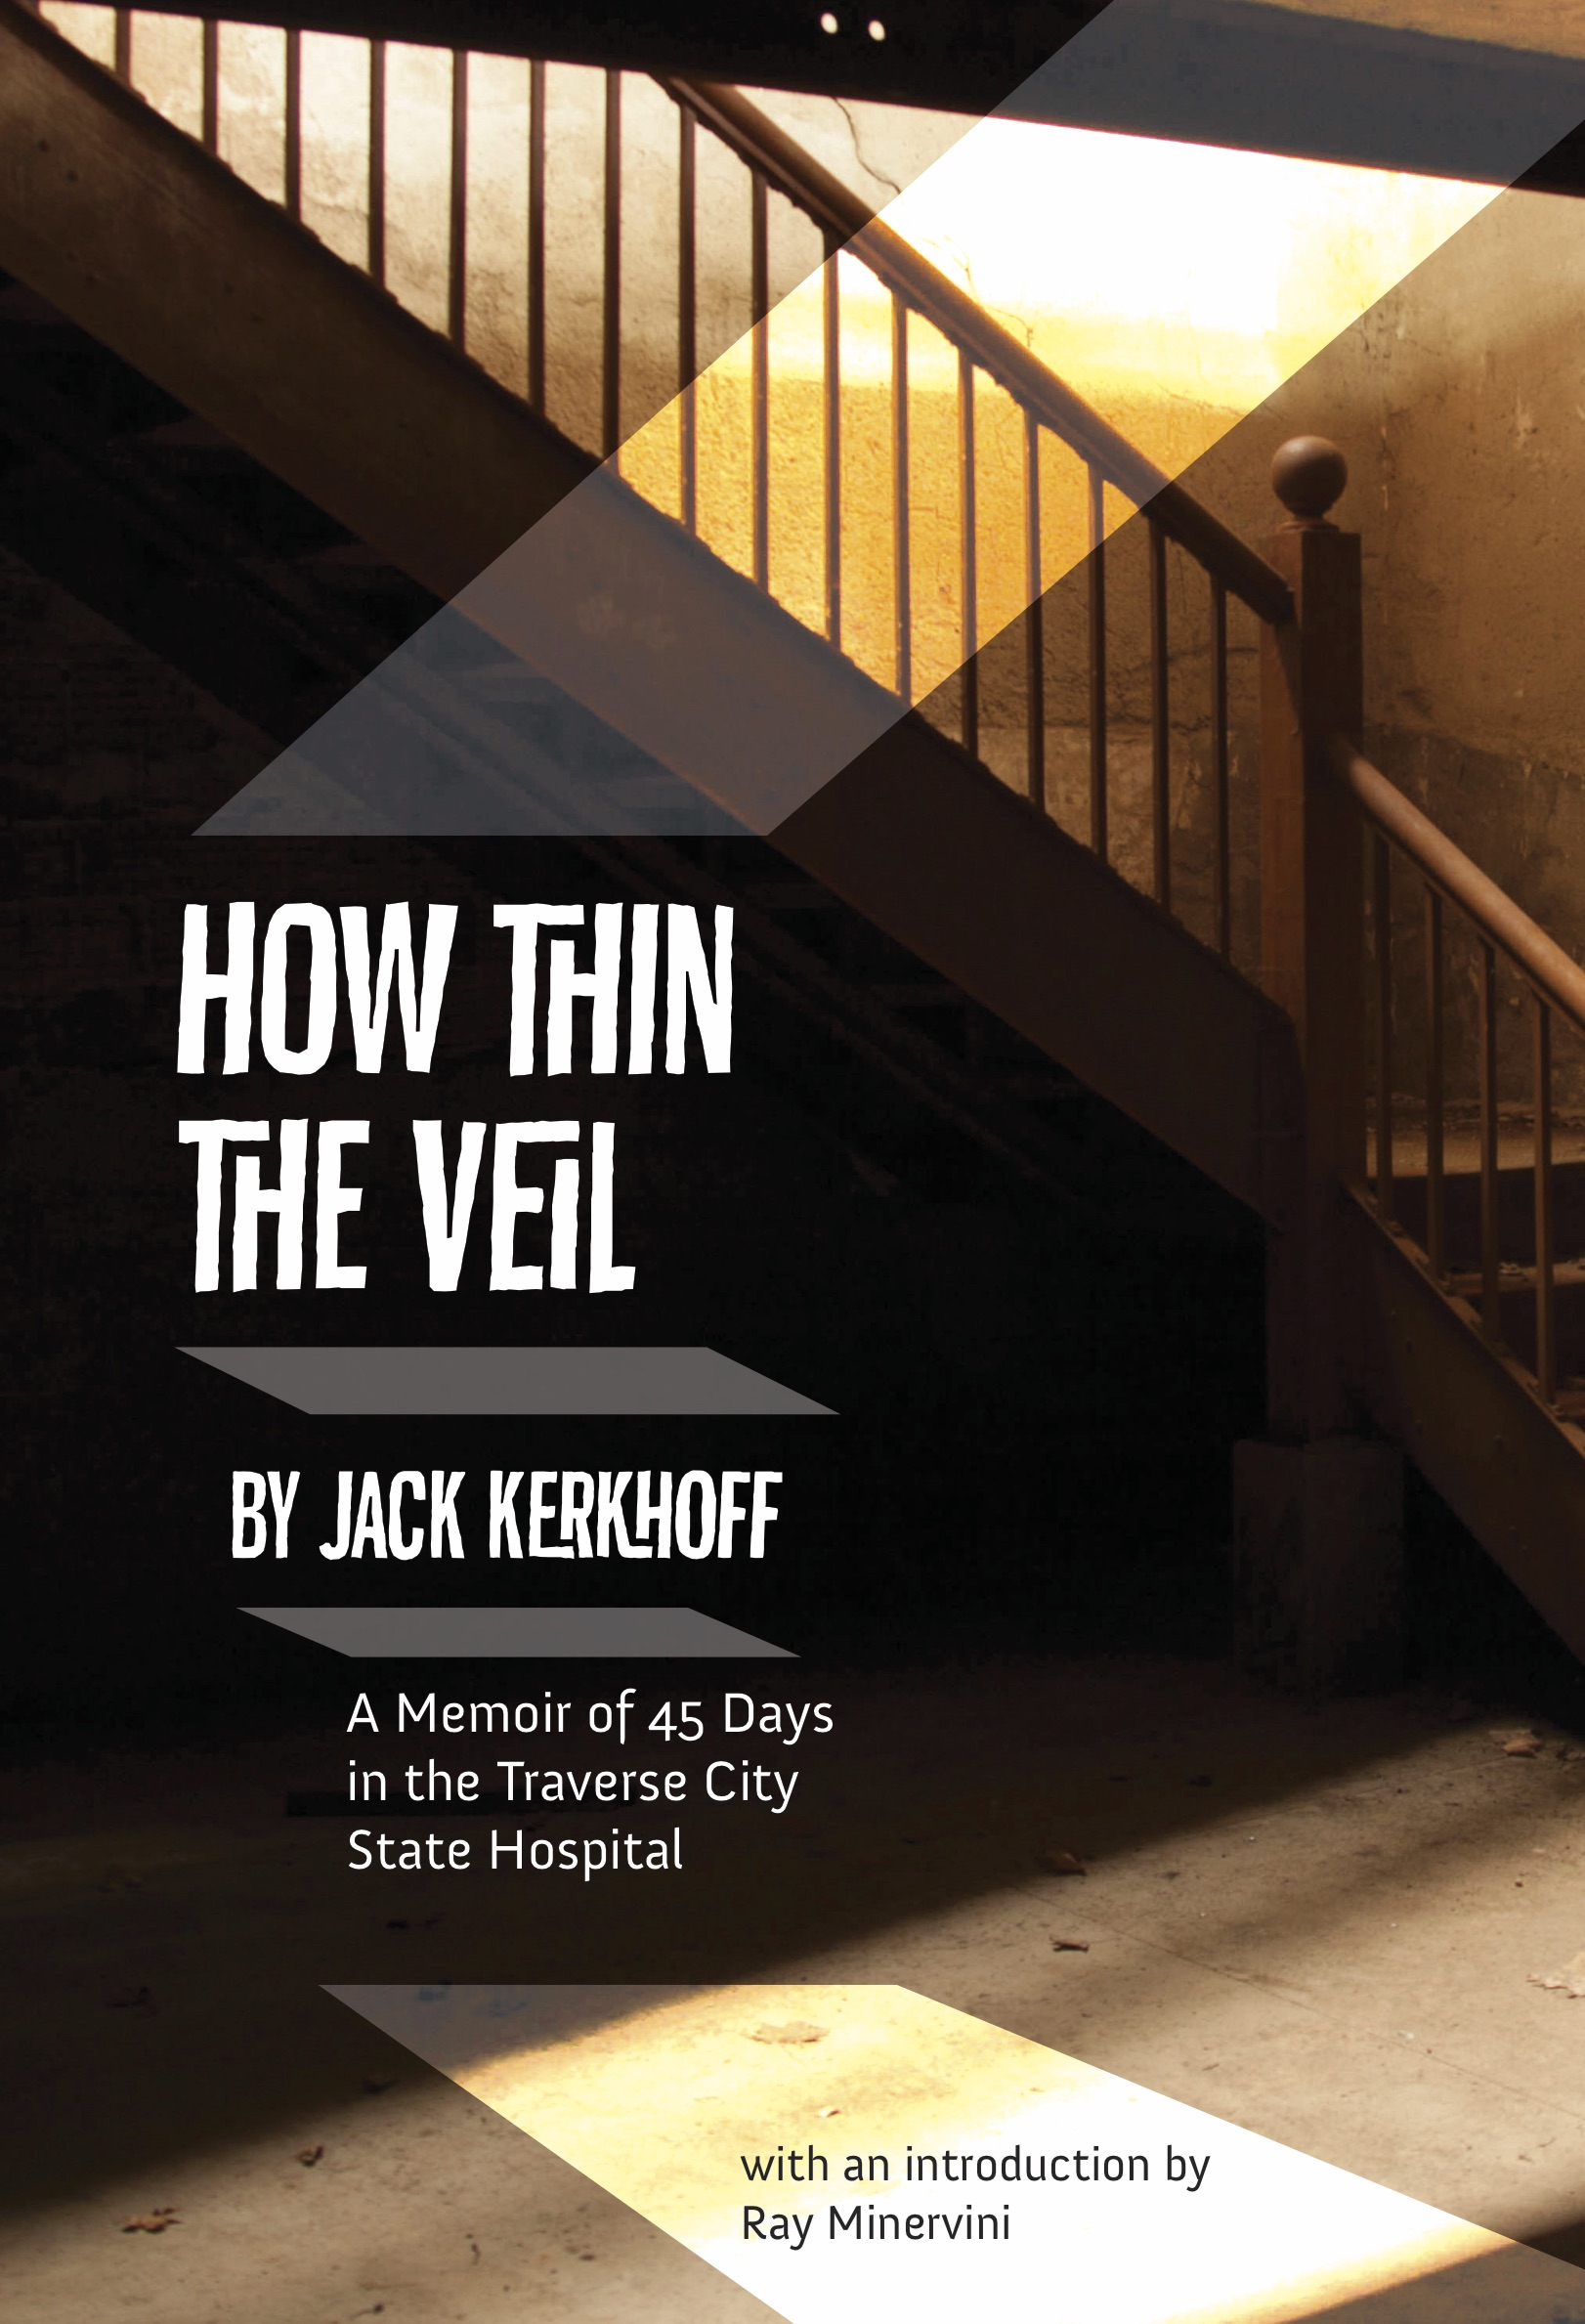 """- Jack Kerkhoff was born to the news. His parents both worked at the Grand Rapids Herald, and Jack got an early start at theTraverse City Record-Eagle. Bigger papers followed: the Detroit News, New York Journal-American, and the New York Post.How Thin the Veil is a 45-day account of Kerkhoff 's treatment, his conversations with the nurses and doctors (some of them with their real names), his interactions with the inmates, and his trips to downtown Traverse City watering holes. There's also romance in the form of Suzy, a pretty, lisping waif whose """"bad spells"""" had kept her hospitalized for eight years.More about the bookBuy the book on Amazon"""